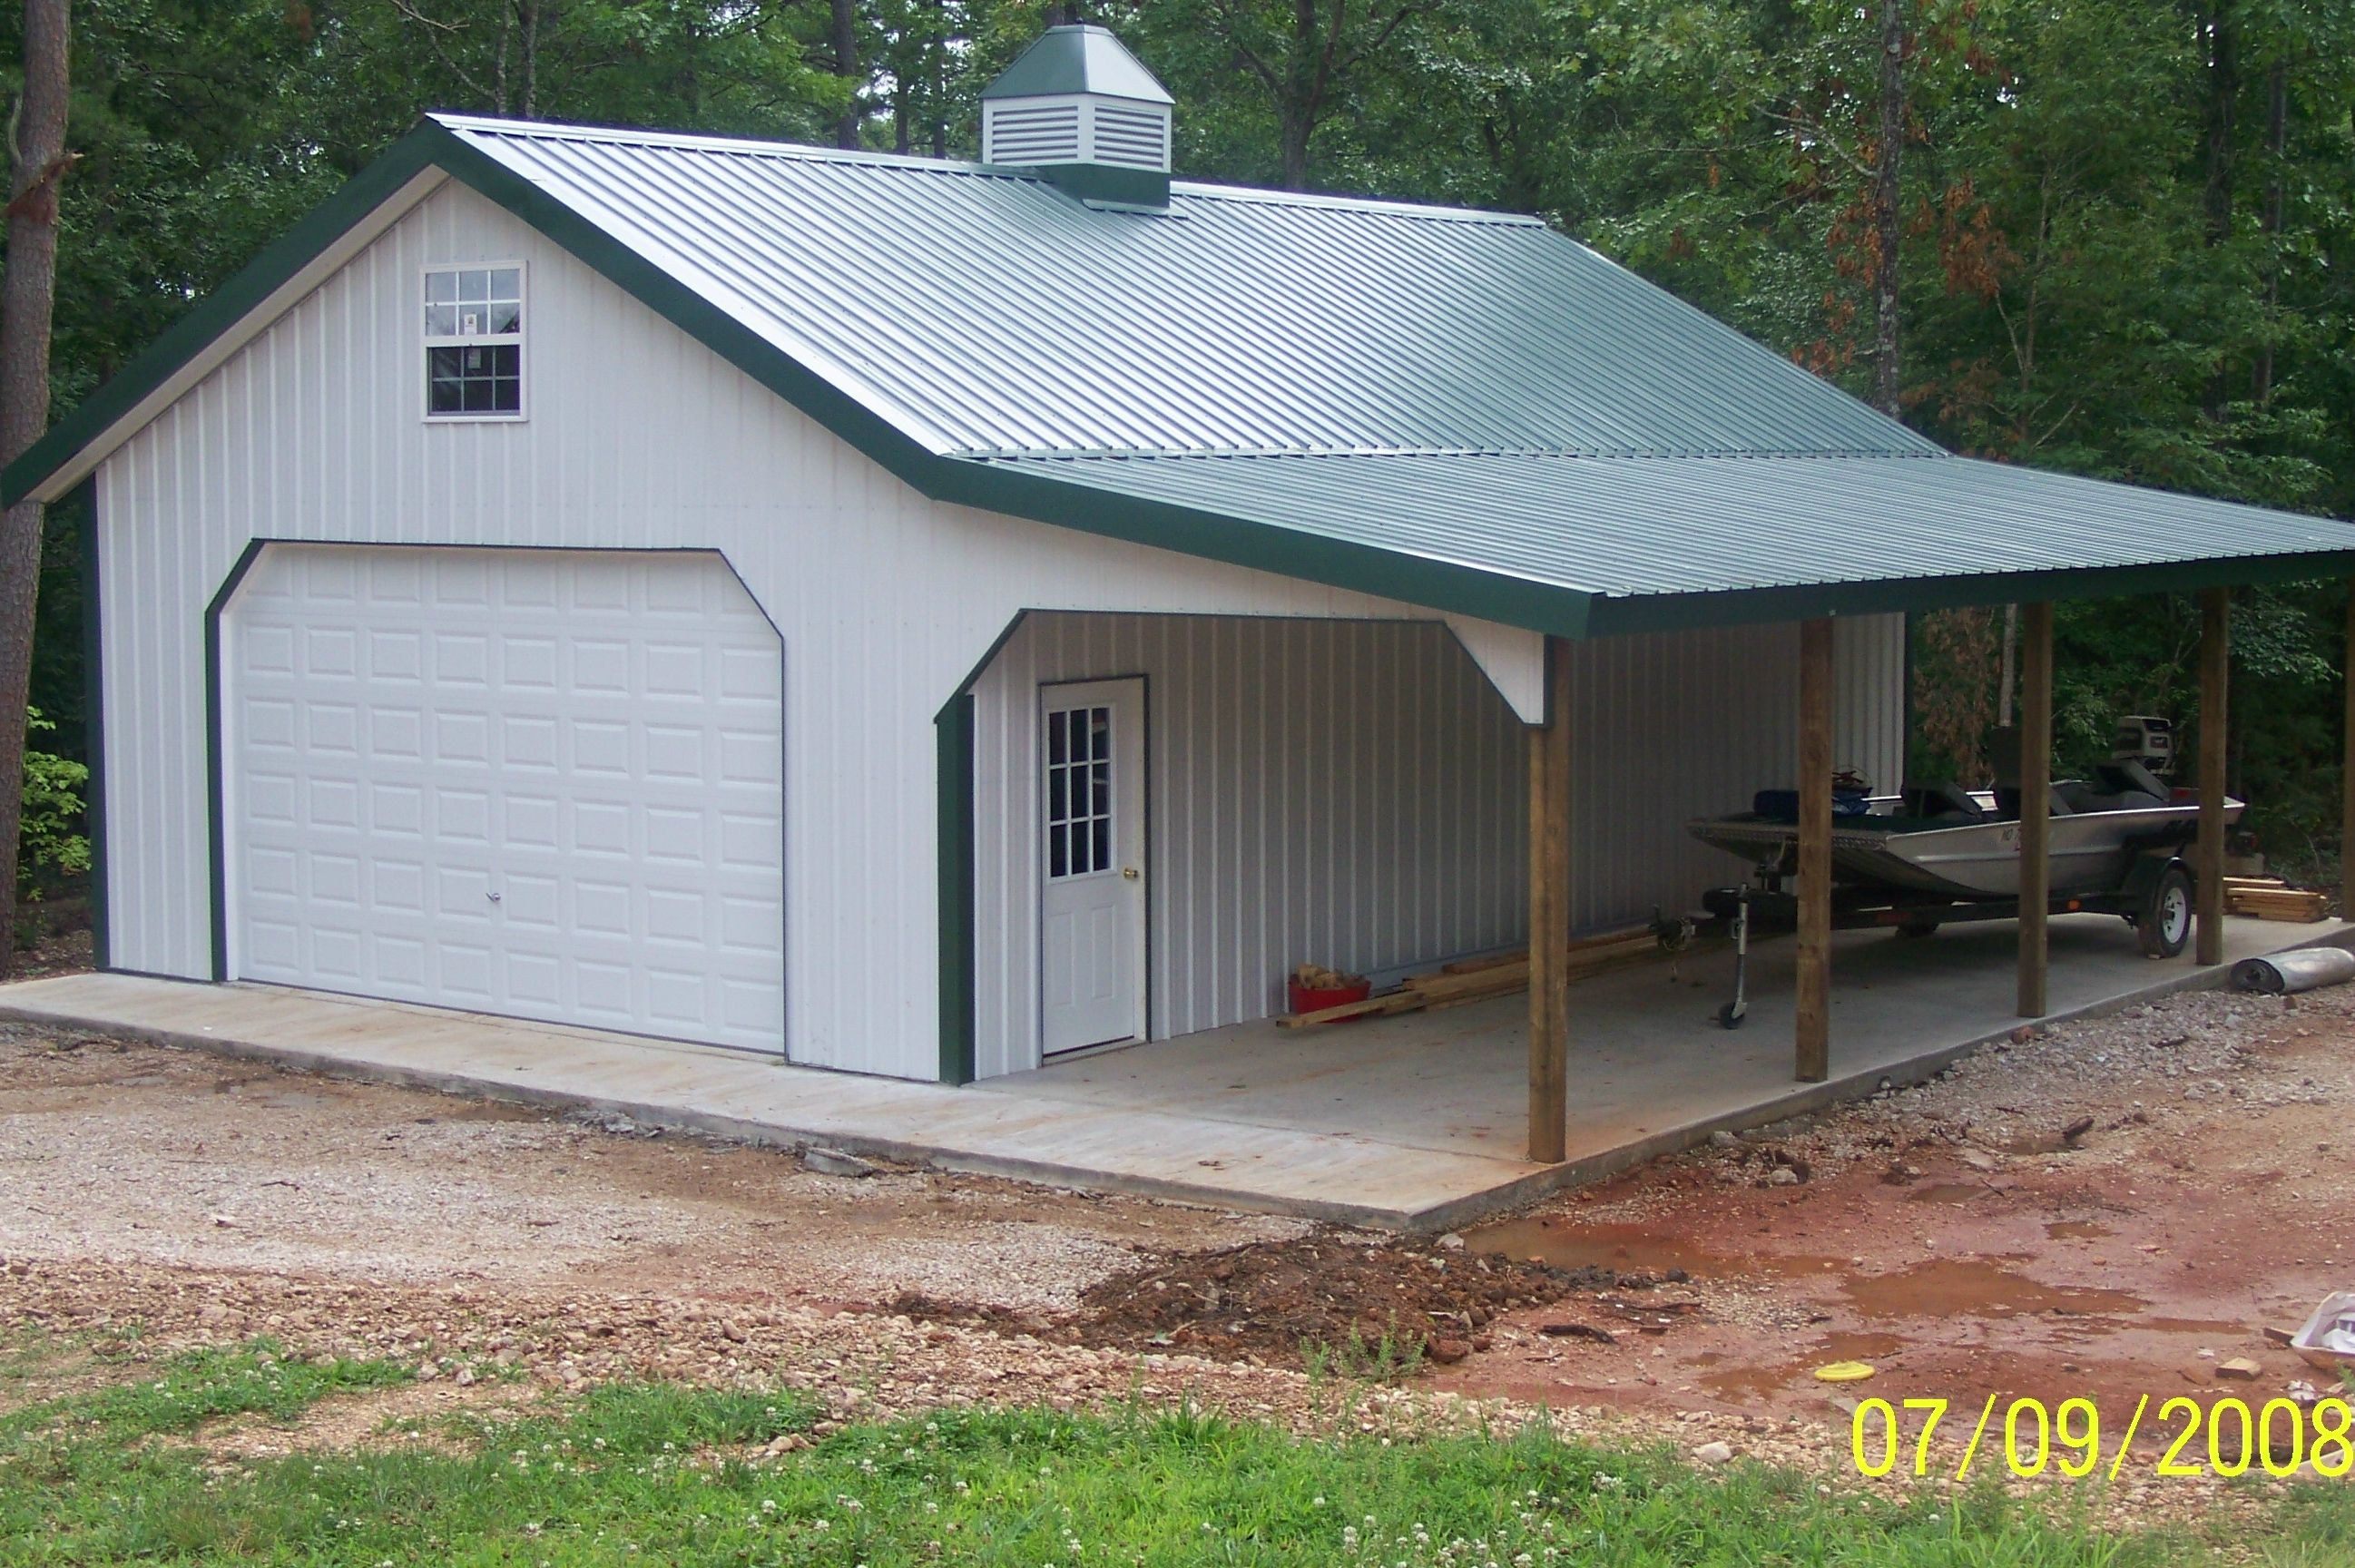 Garage plans 58 garage plans and free diy building Small home plans with garage